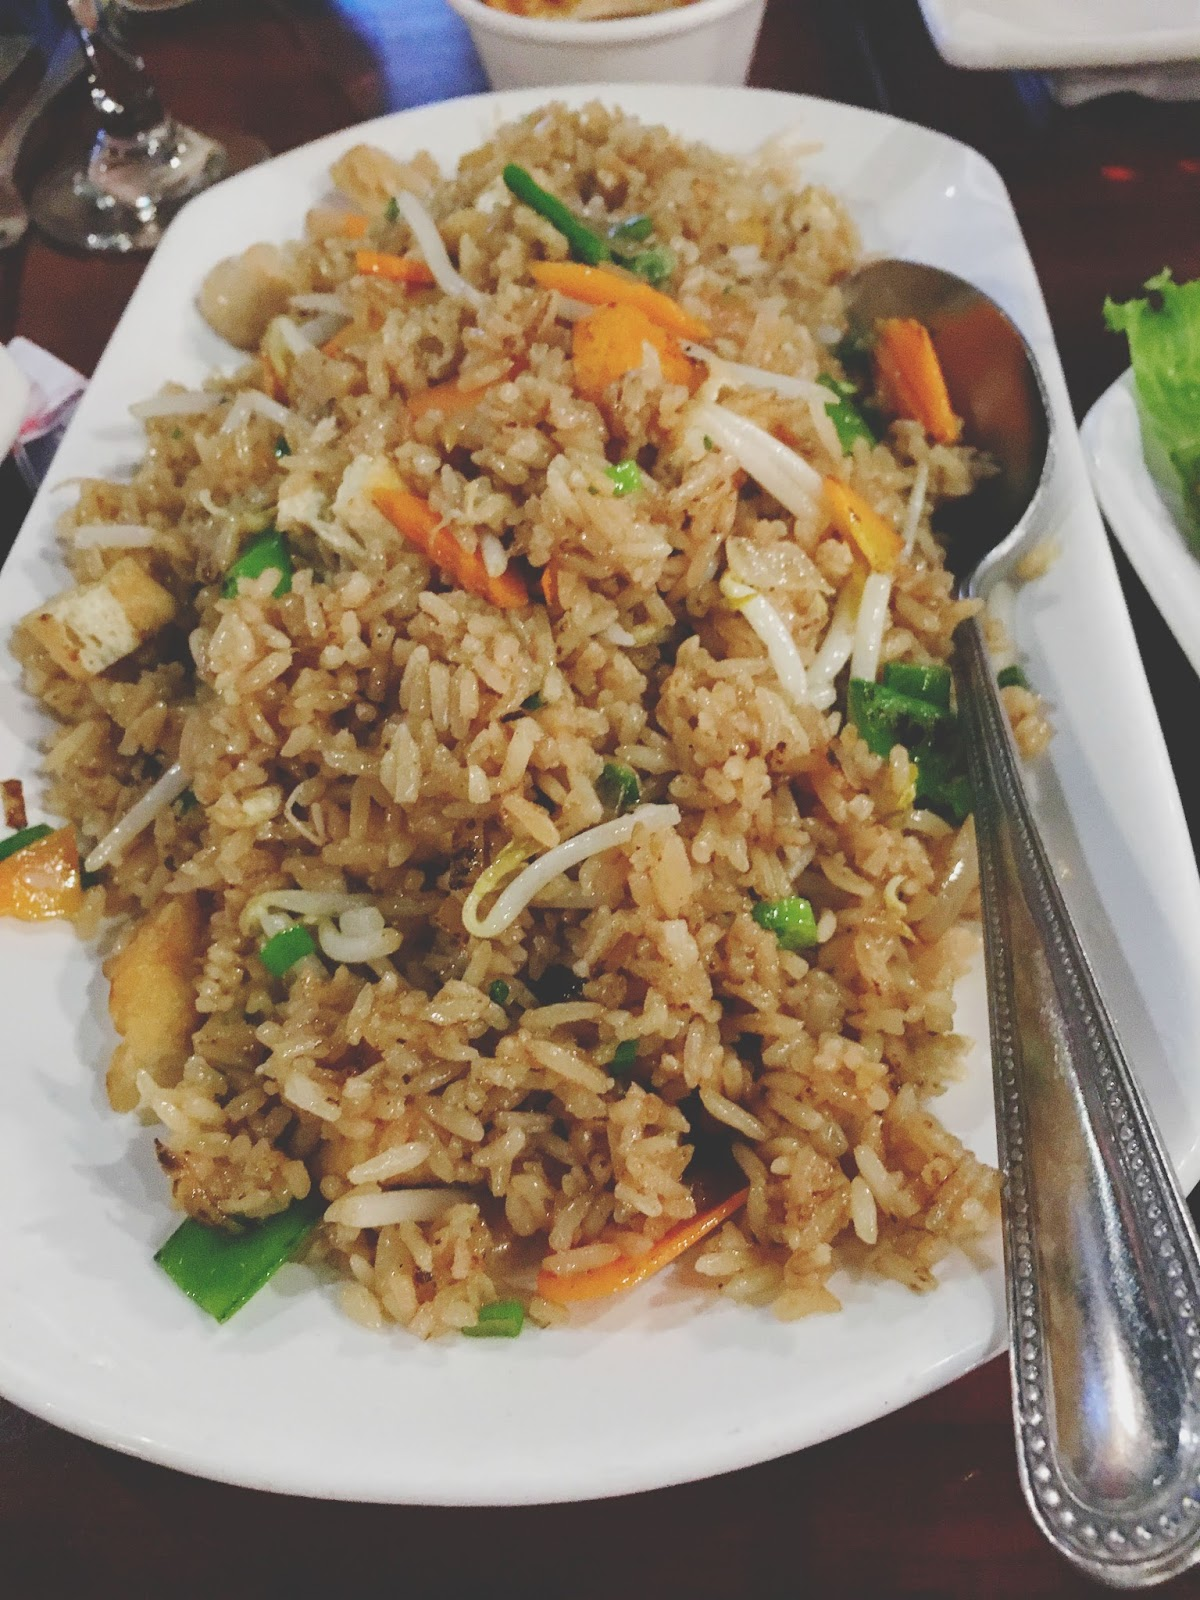 vegetable fried rice at Vietnam Restaurant in Houston, Texas